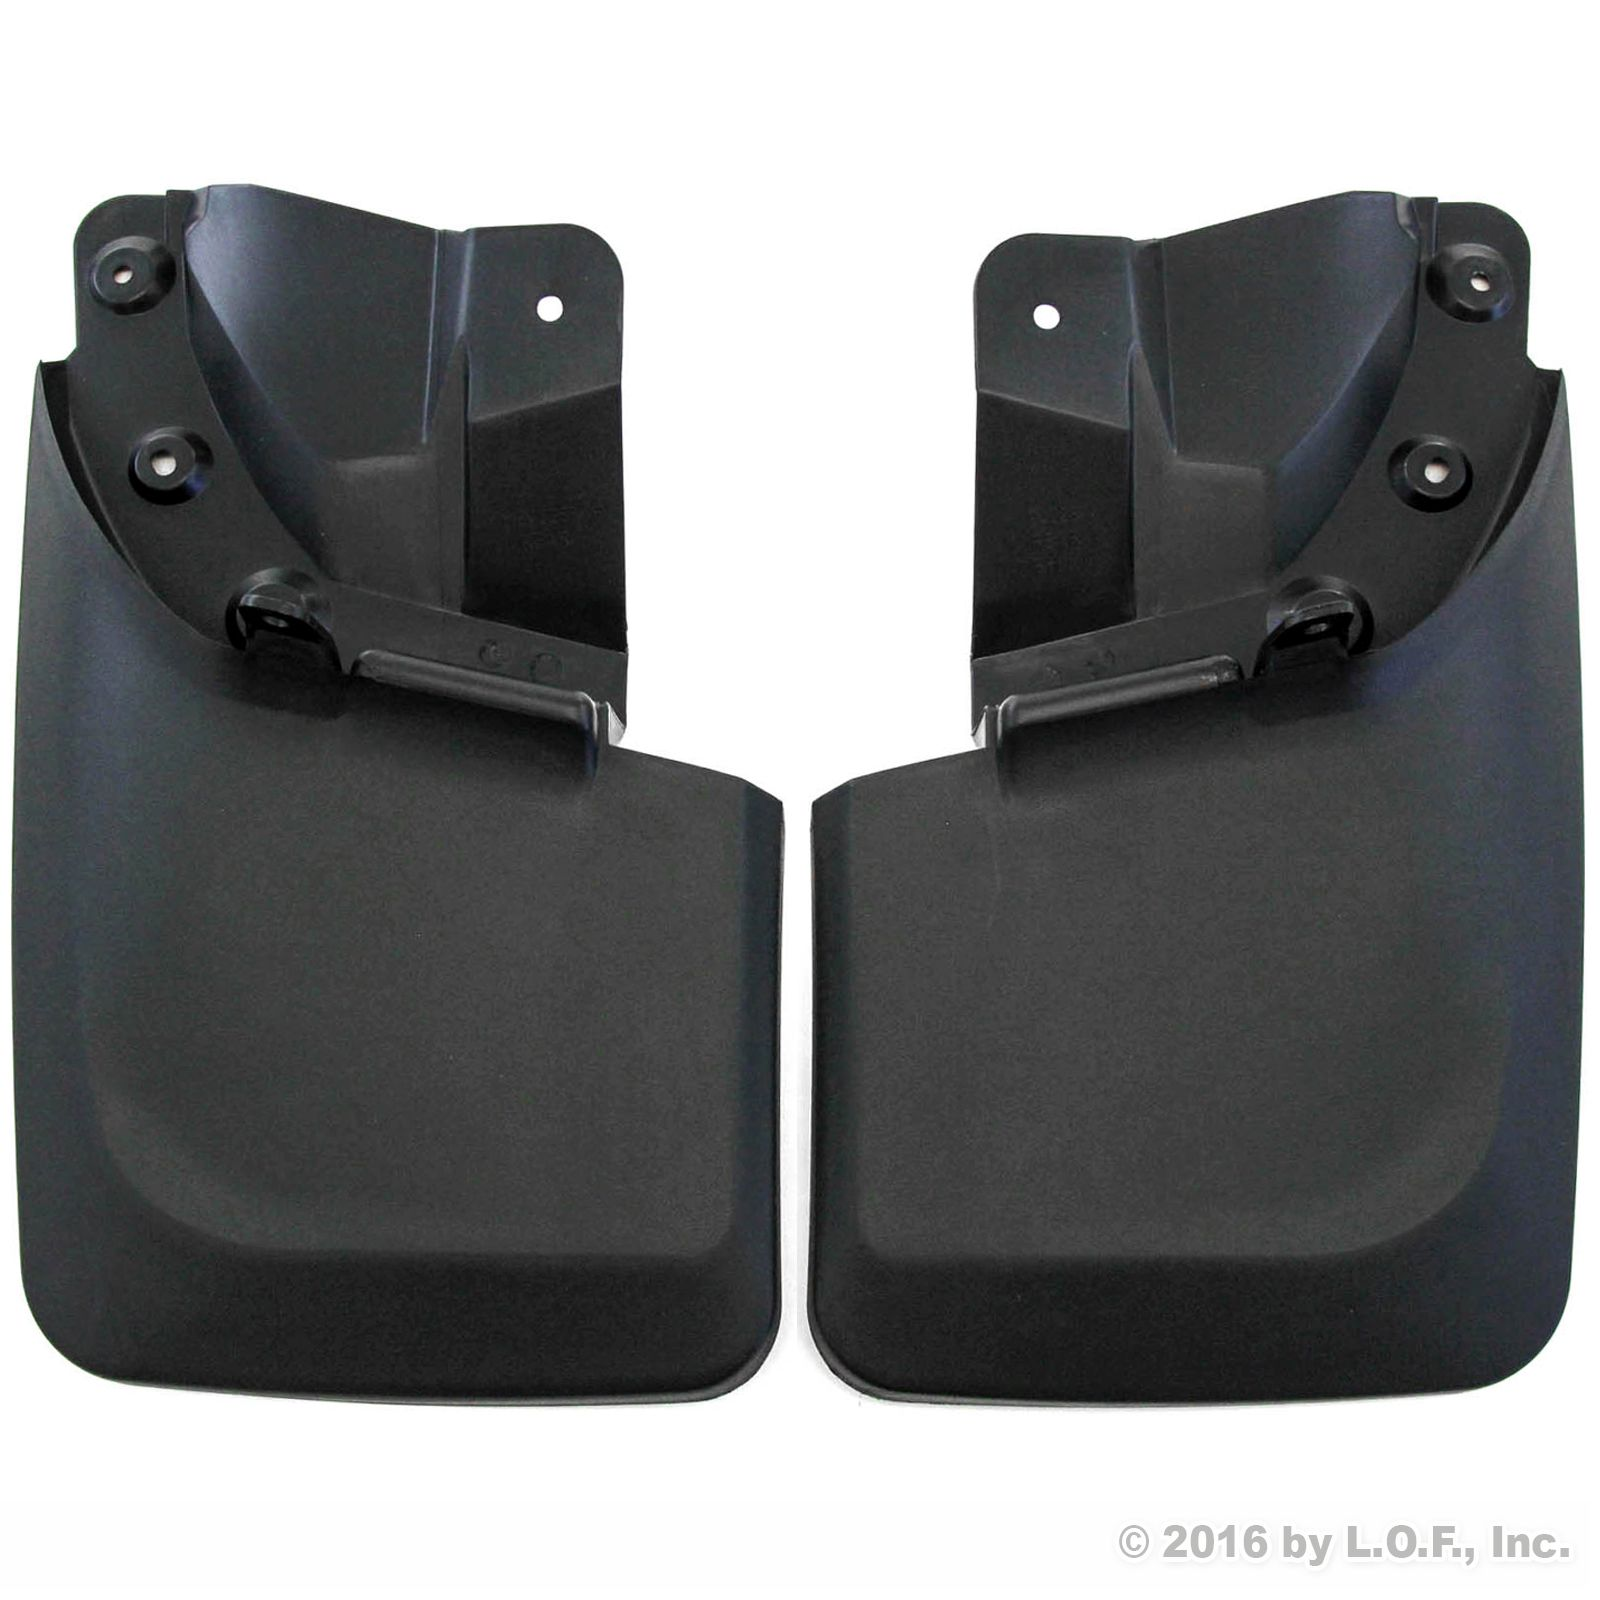 2016-2017 Toyota Tacoma Mud Flaps Guards Splash Guard Rear Molded 2pc (With OEM Fender Flares ONLY) by Red Hound Auto